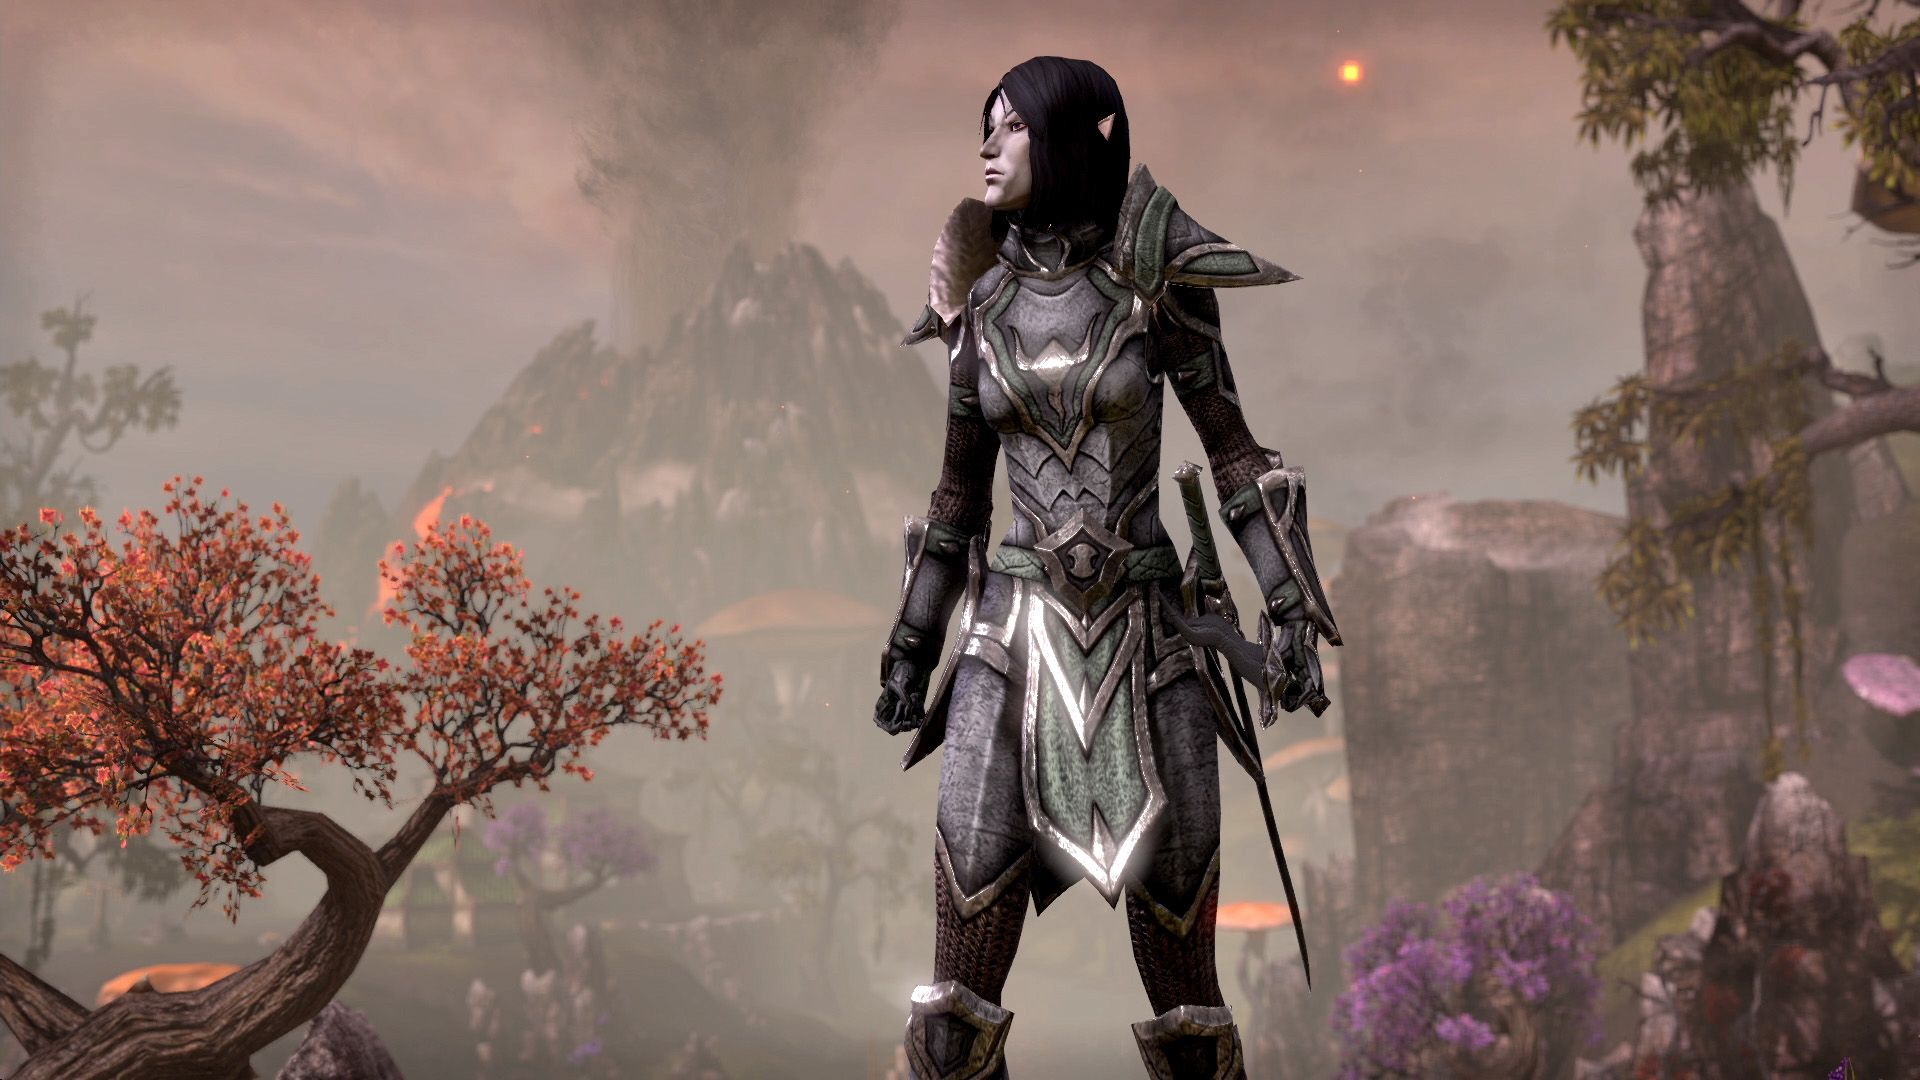 Character Avatar   Elder Scrolls Online ESO gaming games images 1920x1080